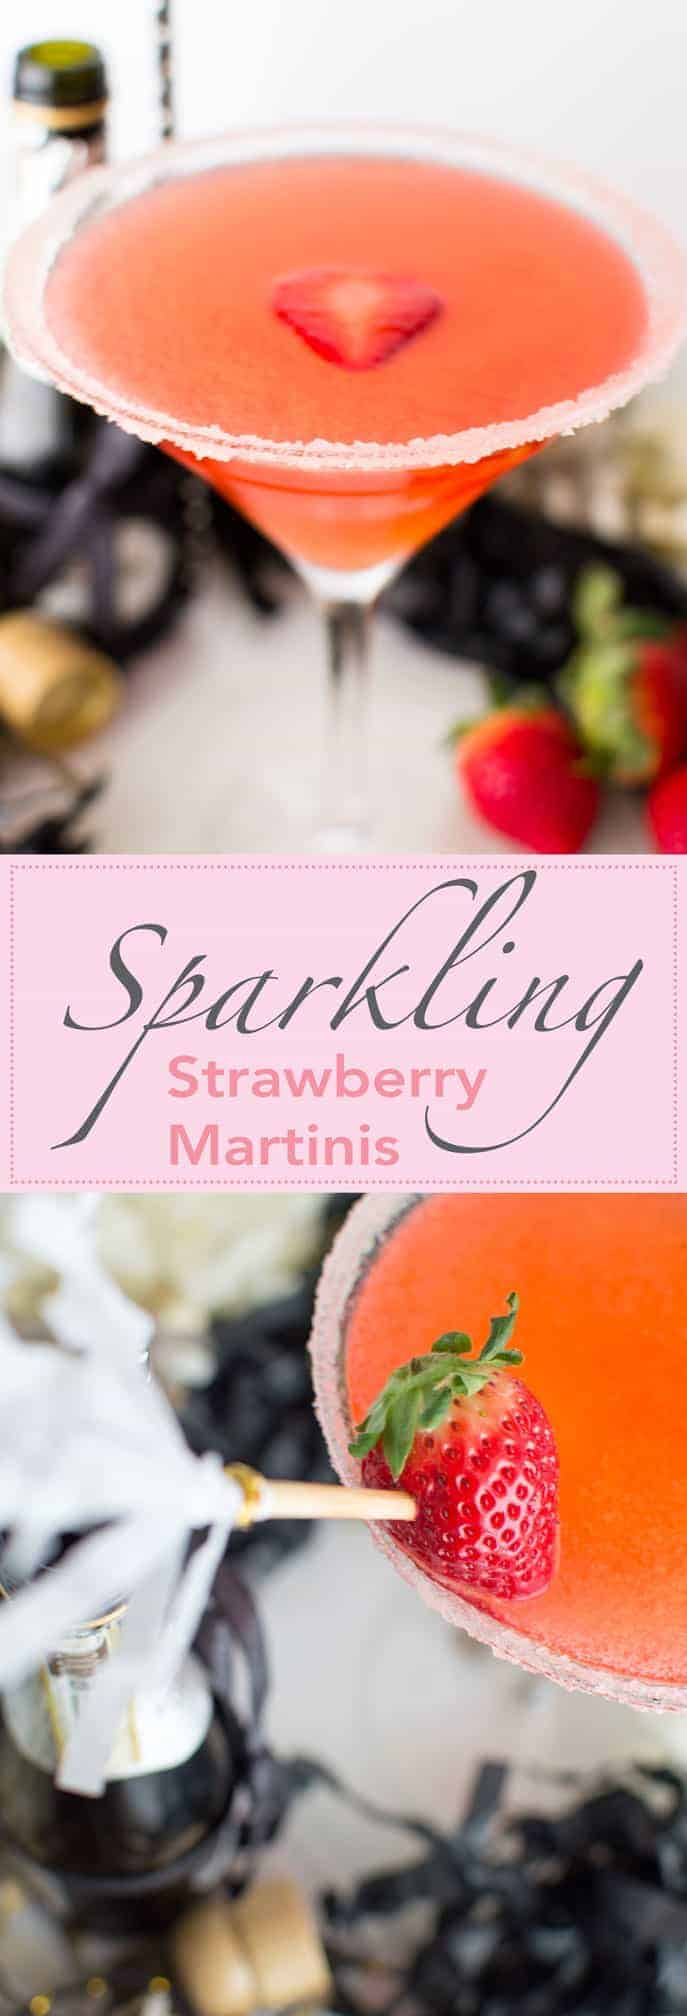 Sparkling Strawberry Martini - vodka, strawberries and champagne bubbles! Dangerously good!